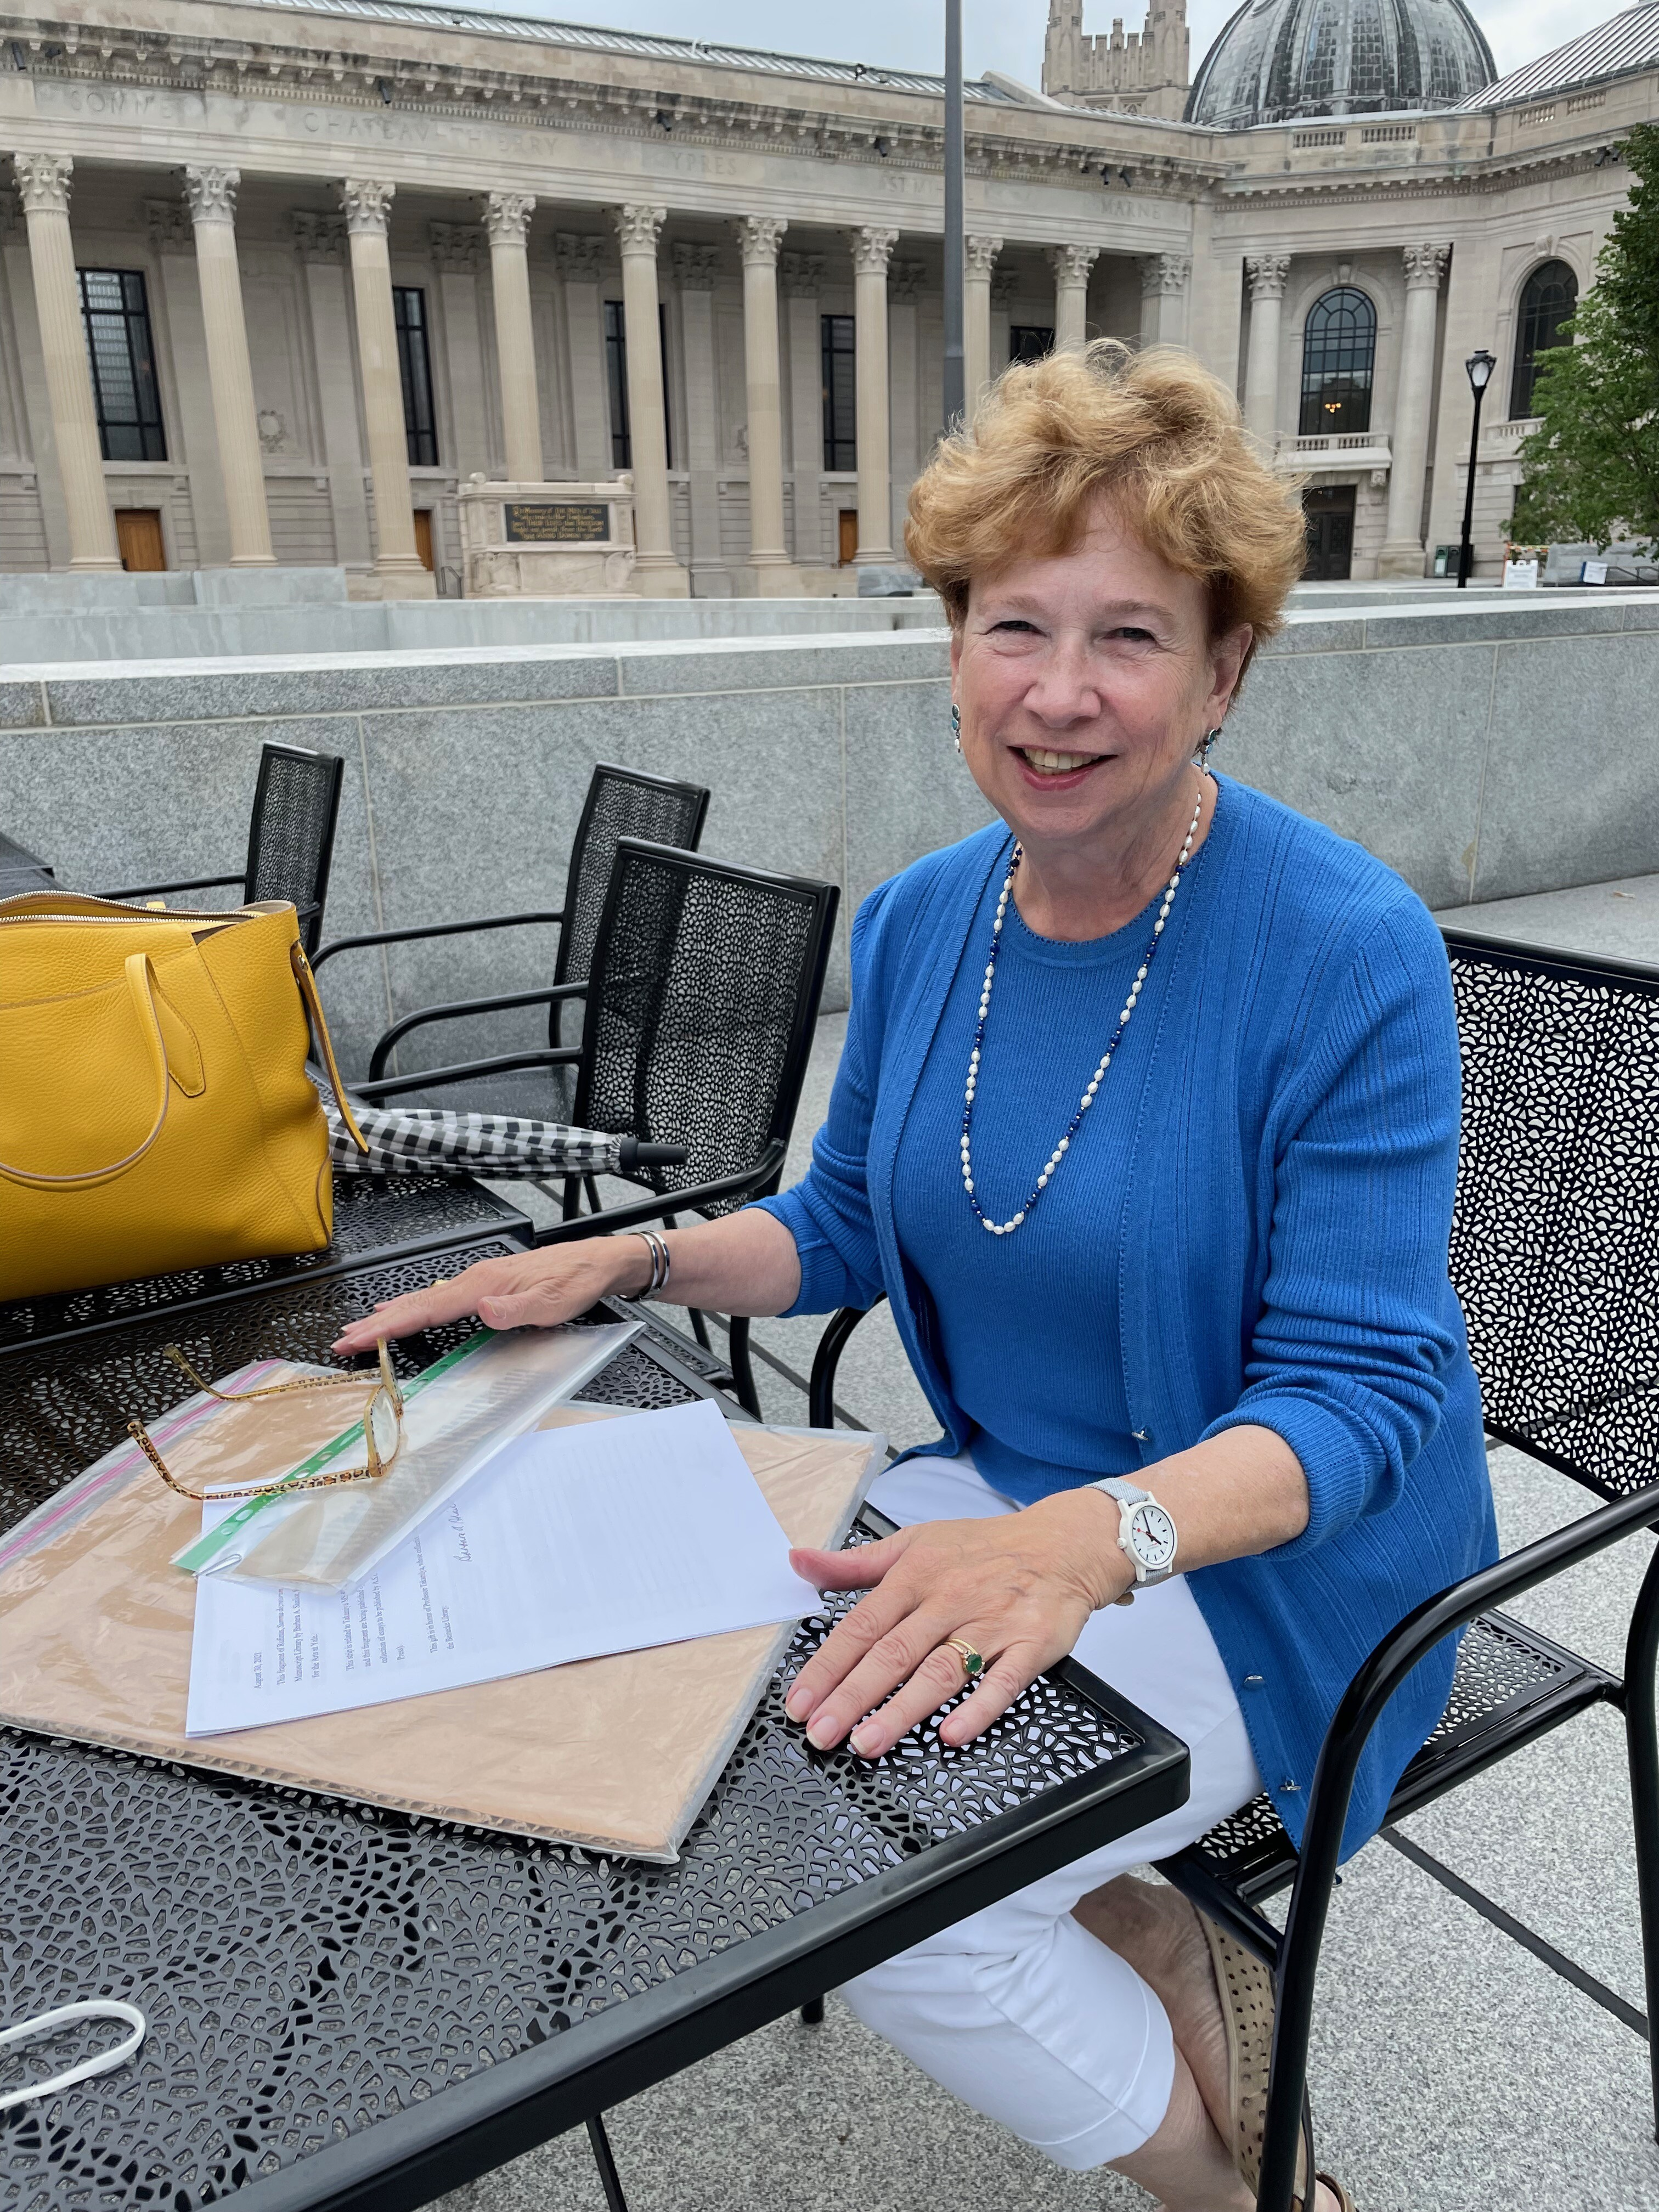 Barbara Shailor pictured seating in Beinecke Plaza with her donation in front of her.